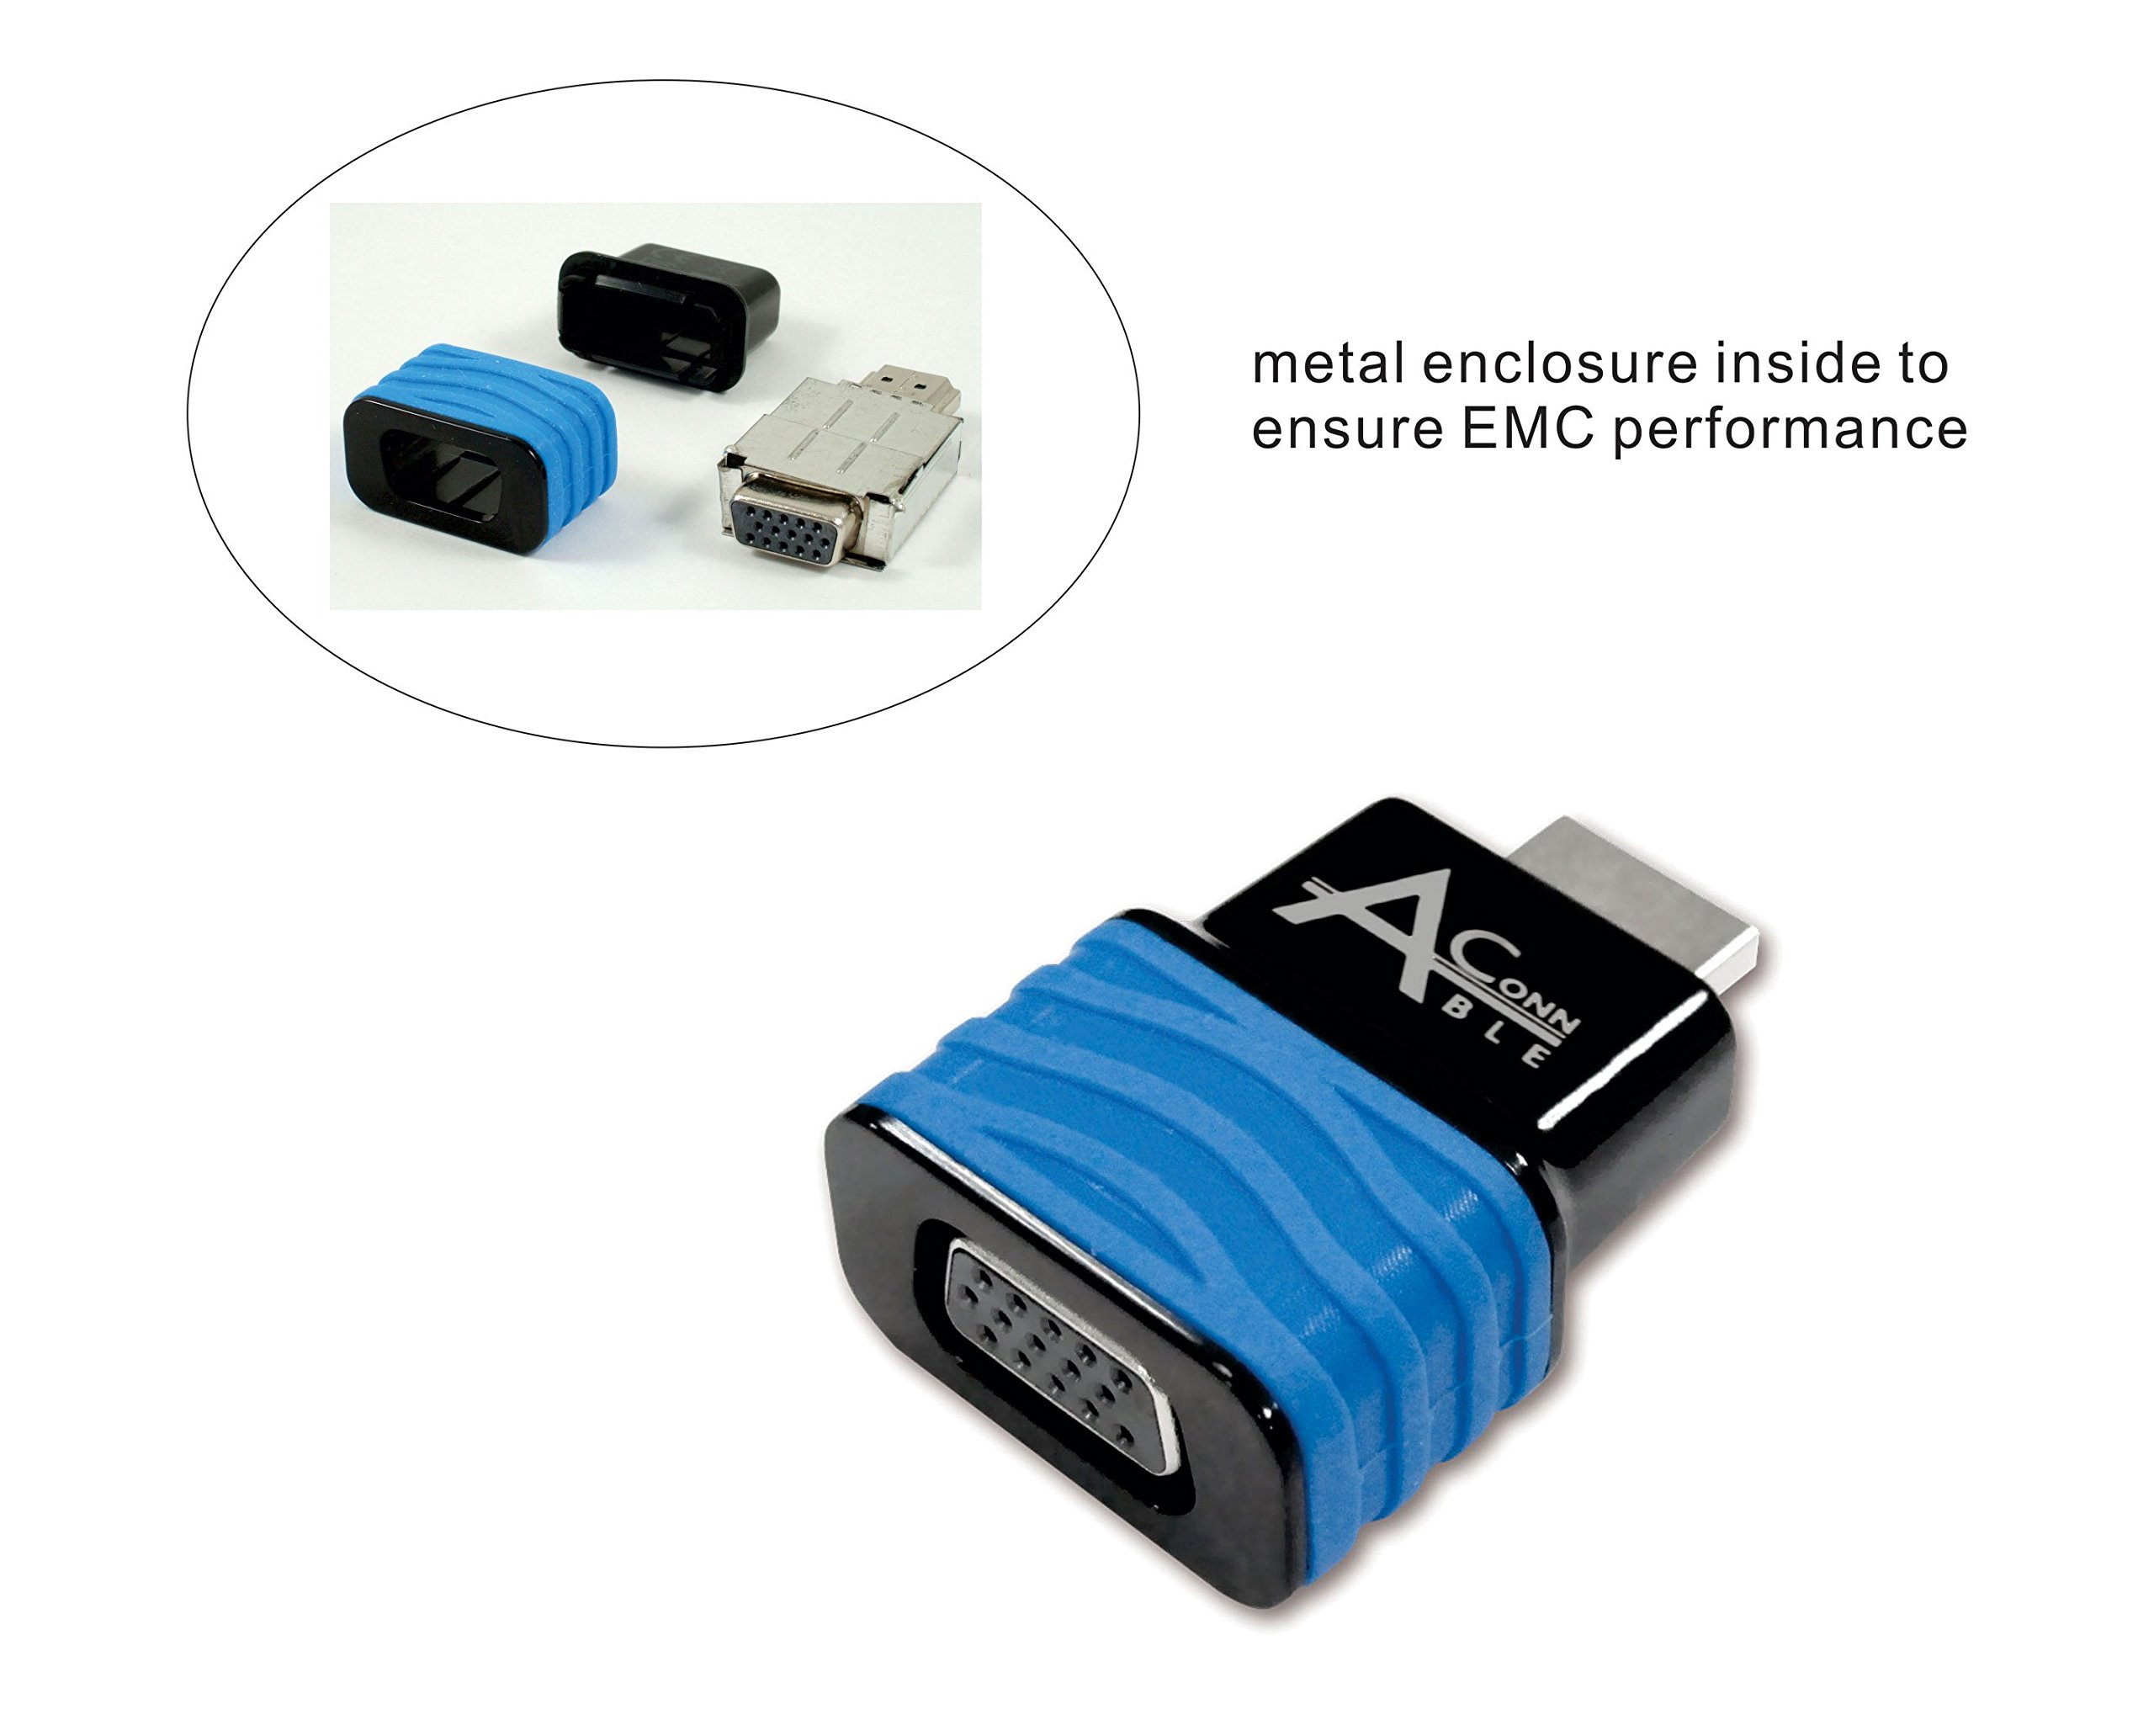 Ableconn HDMI2VGAD HDMI to VGA Adapter Converter Dongle for Desktop PC/Notebook up to 1920x1200 / 1920x1080 - HDMI to VGA HD15 monitor by Ableconn (Image #2)